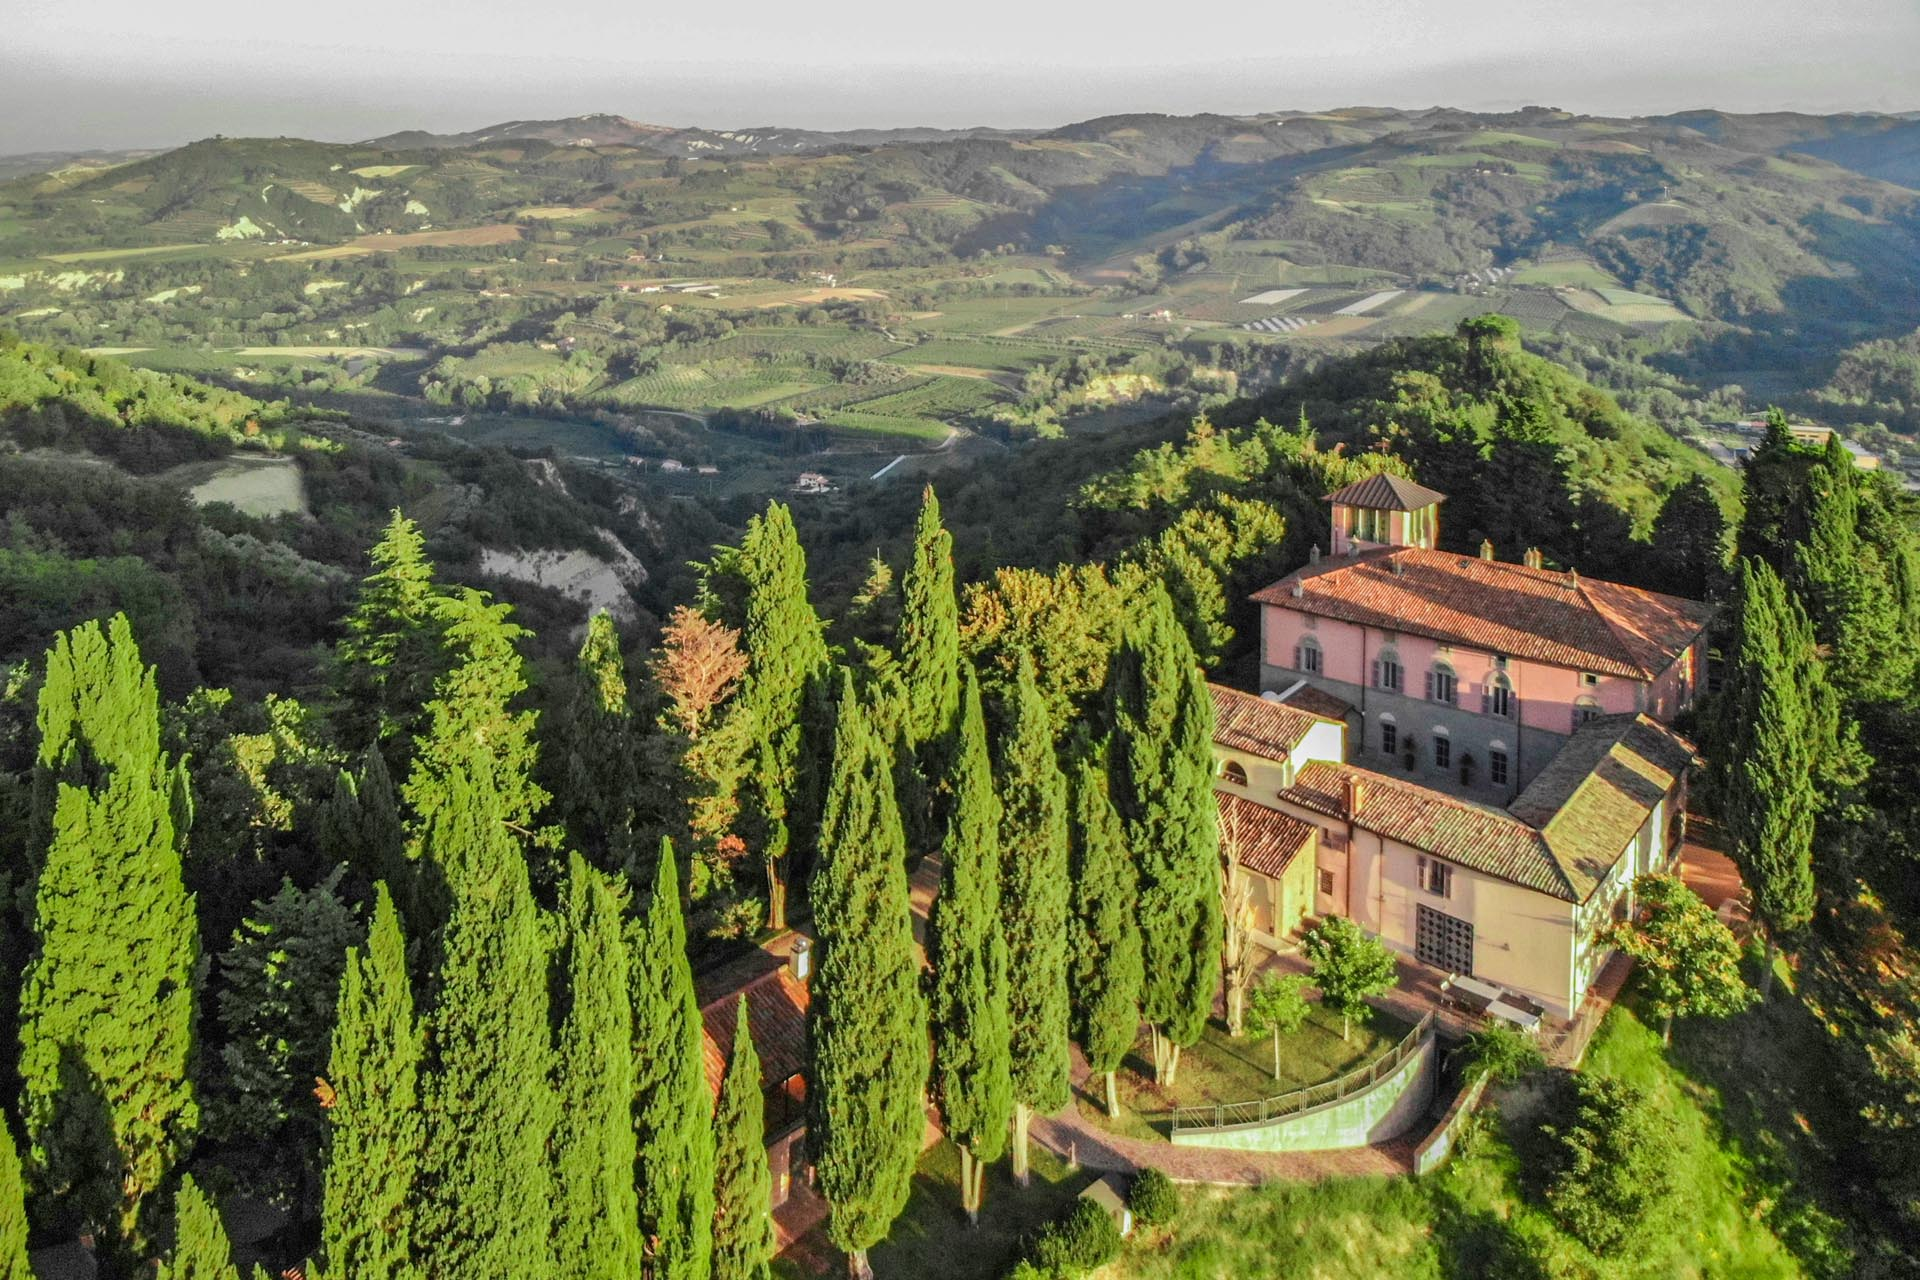 CASTLES FOR SALE, RUINED CASTLES FOR RENOVATION, CONVERSION IN